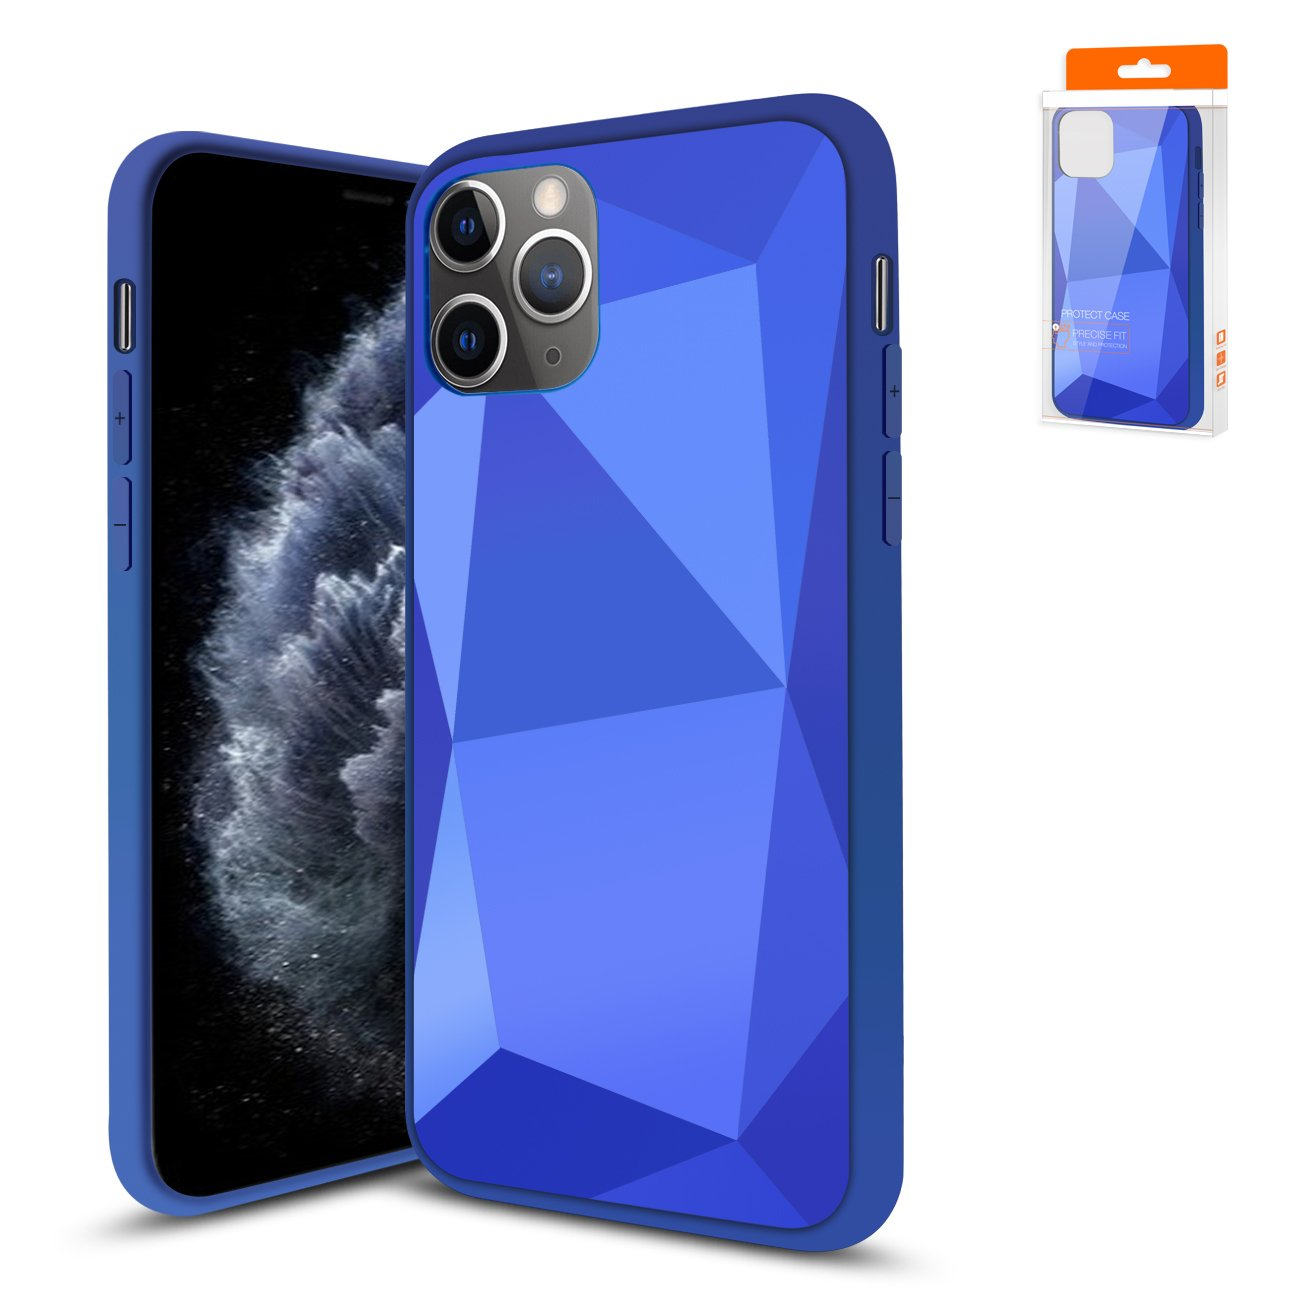 Reiko Apple iPhone 11 Pro Apple Diamond Cases In Blue